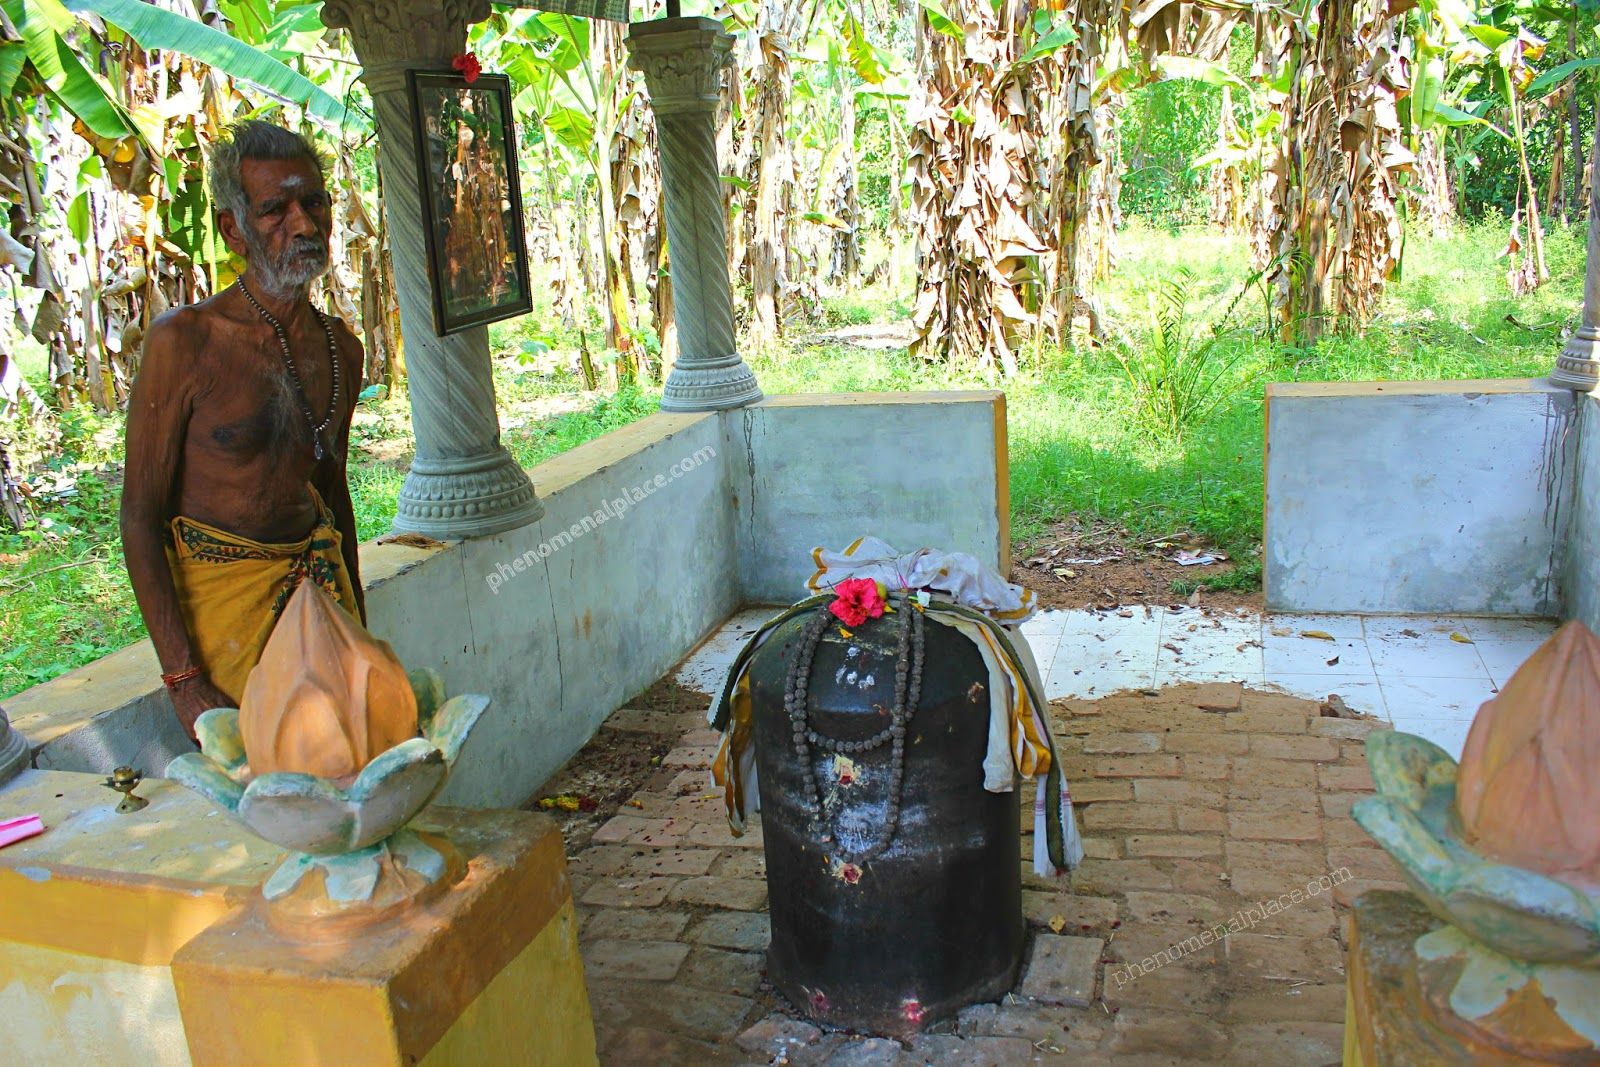 This is the purported grave of Indian King Raja Raja Chola